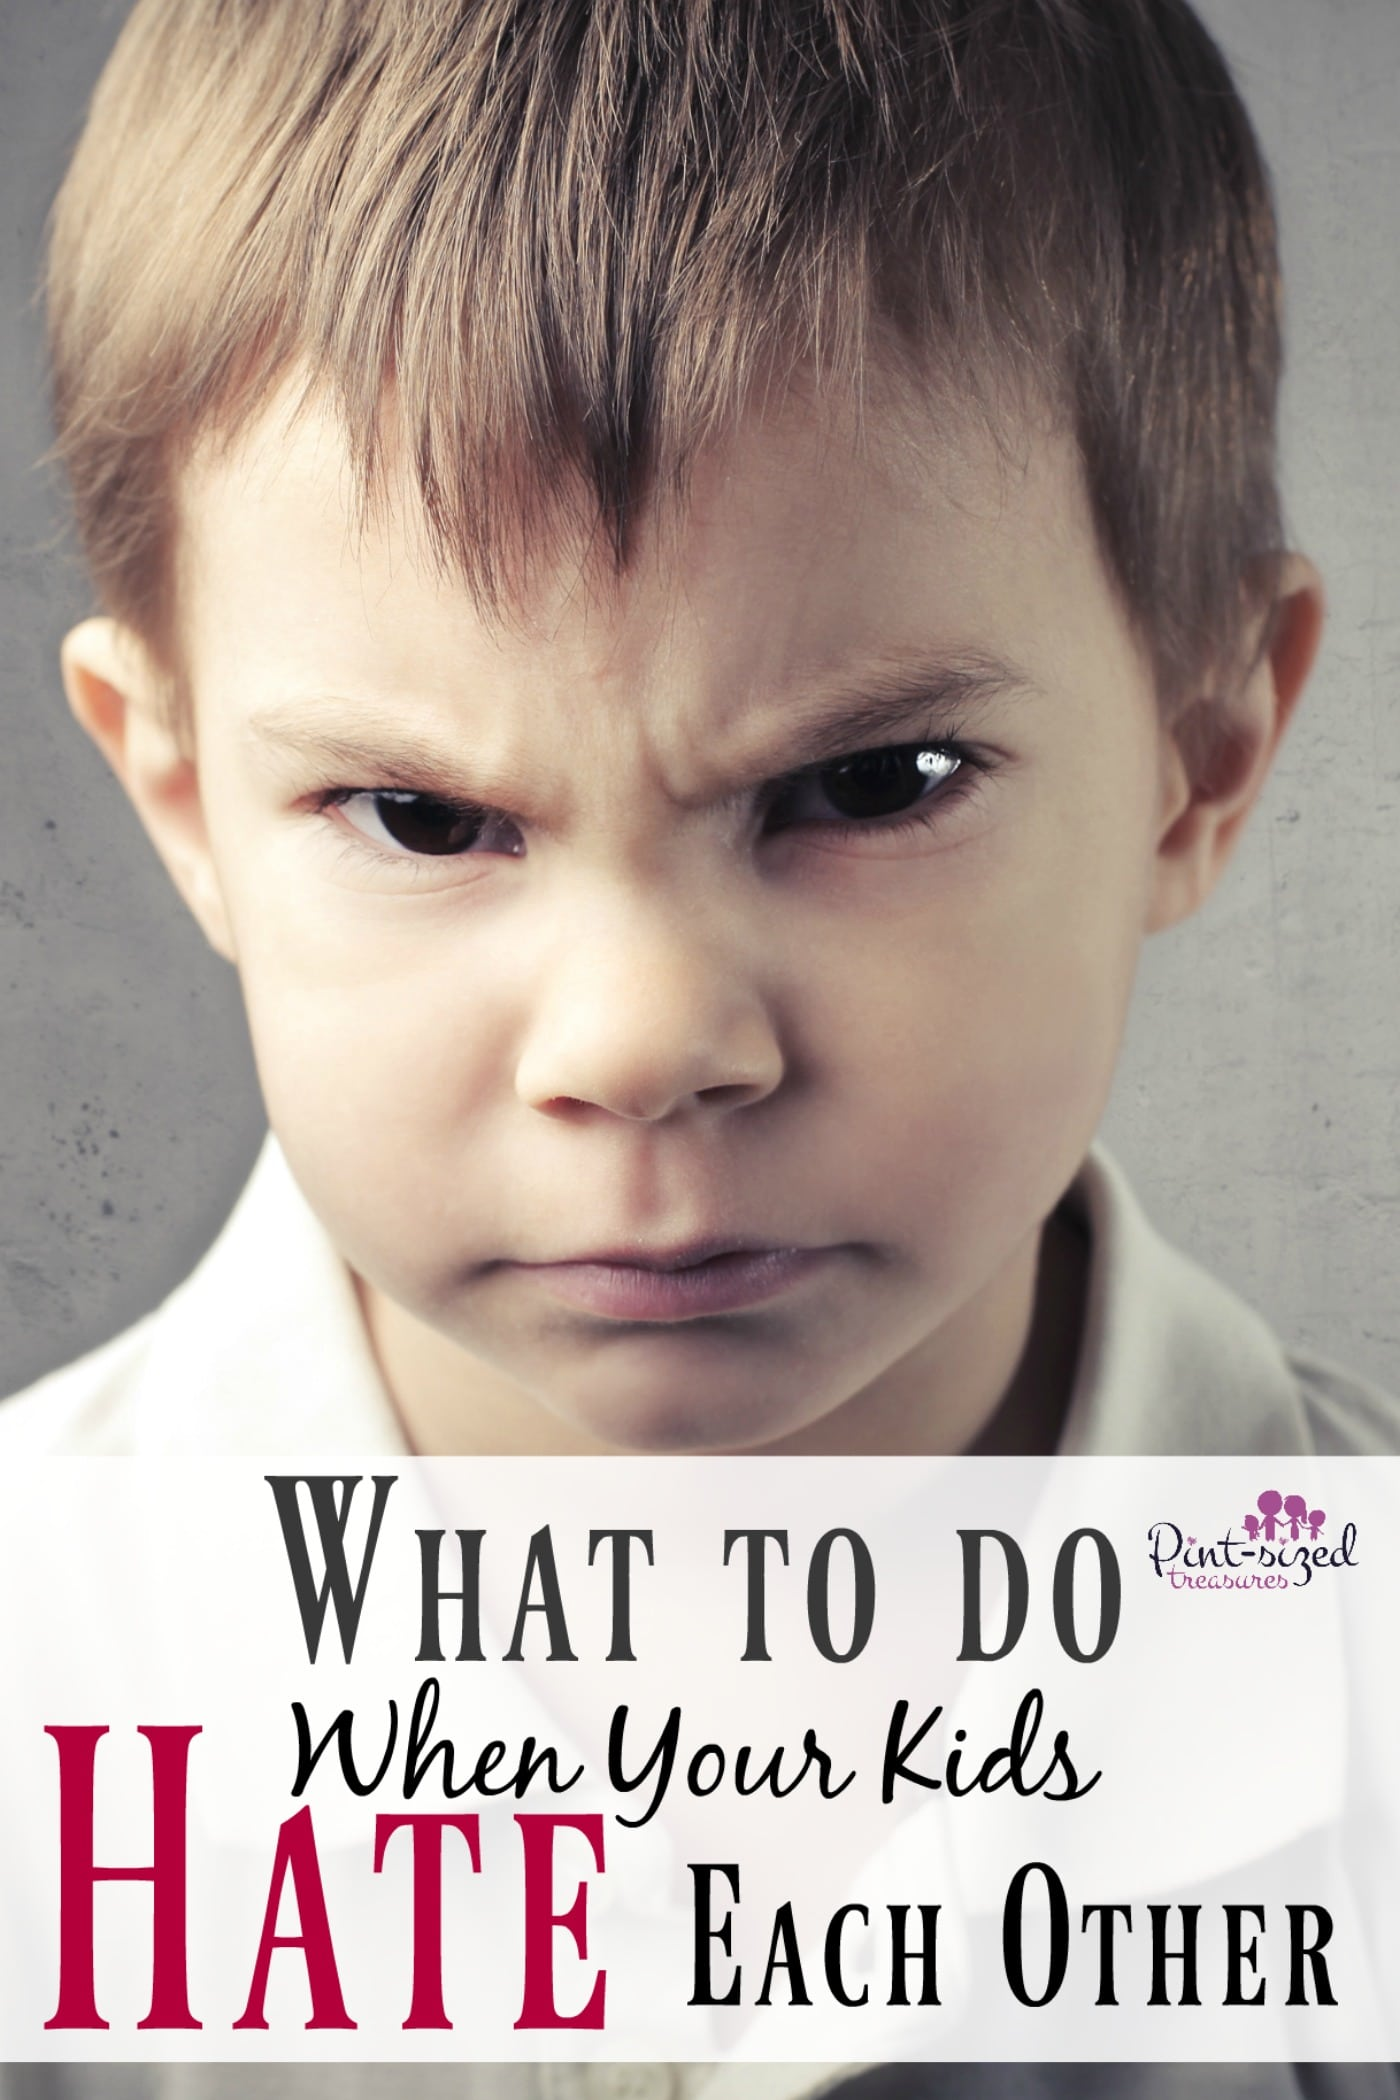 What To Do When Your Kids Hate Each Other · Pint-sized